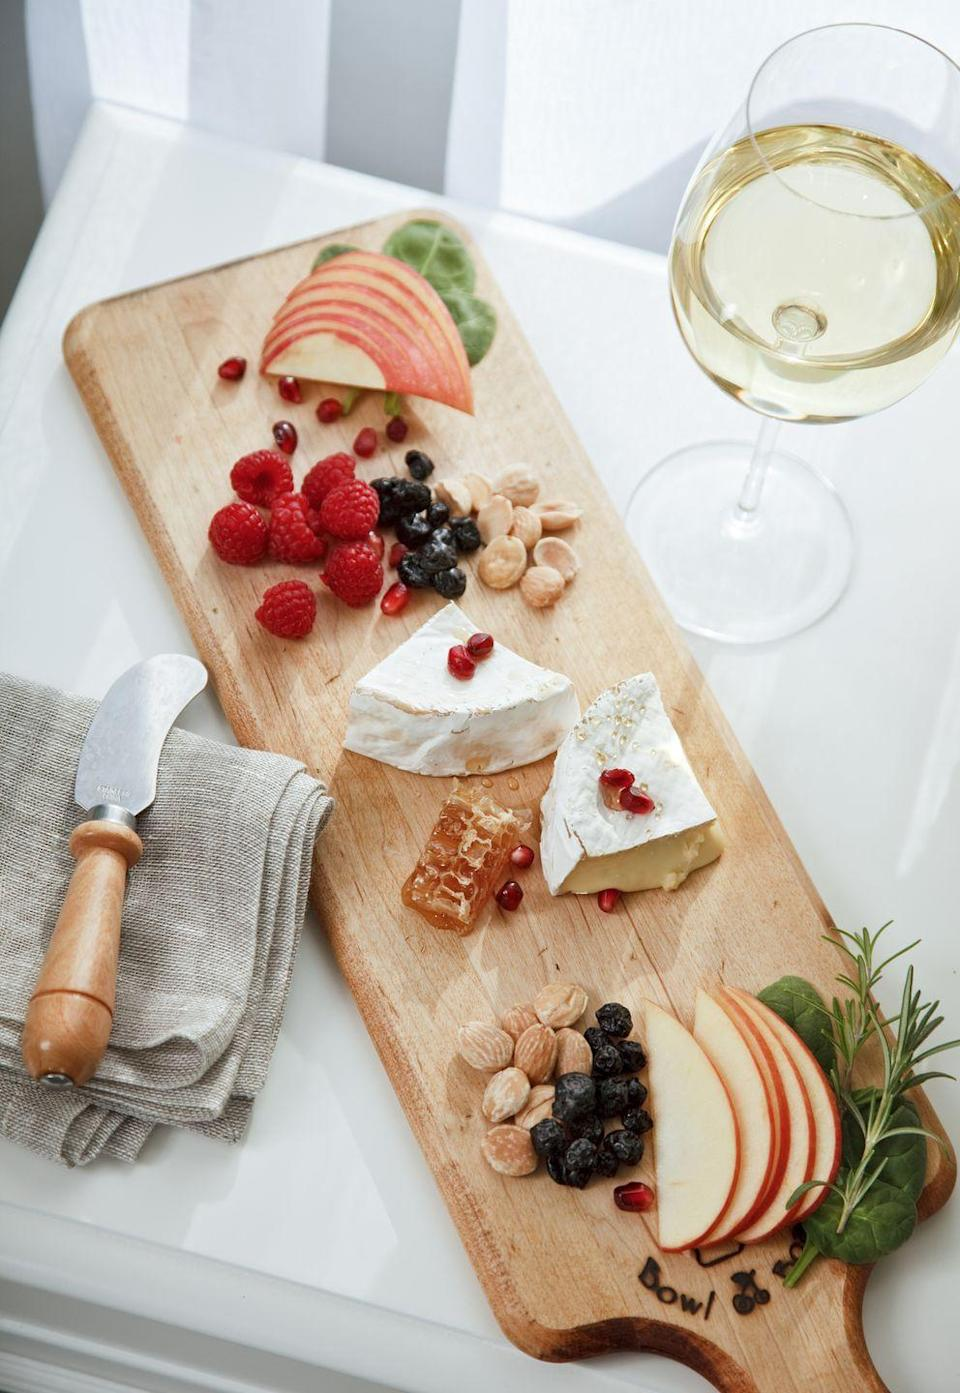 <p>There's no better snack to nibble on all day than a charcuterie board. Add whichever treats you like, and don't forget to pair your cheeses and jams with the perfect wines. Not a fan of cheese and crackers? Try a different type of charcuterie board, like one made with candy or desserts. </p>